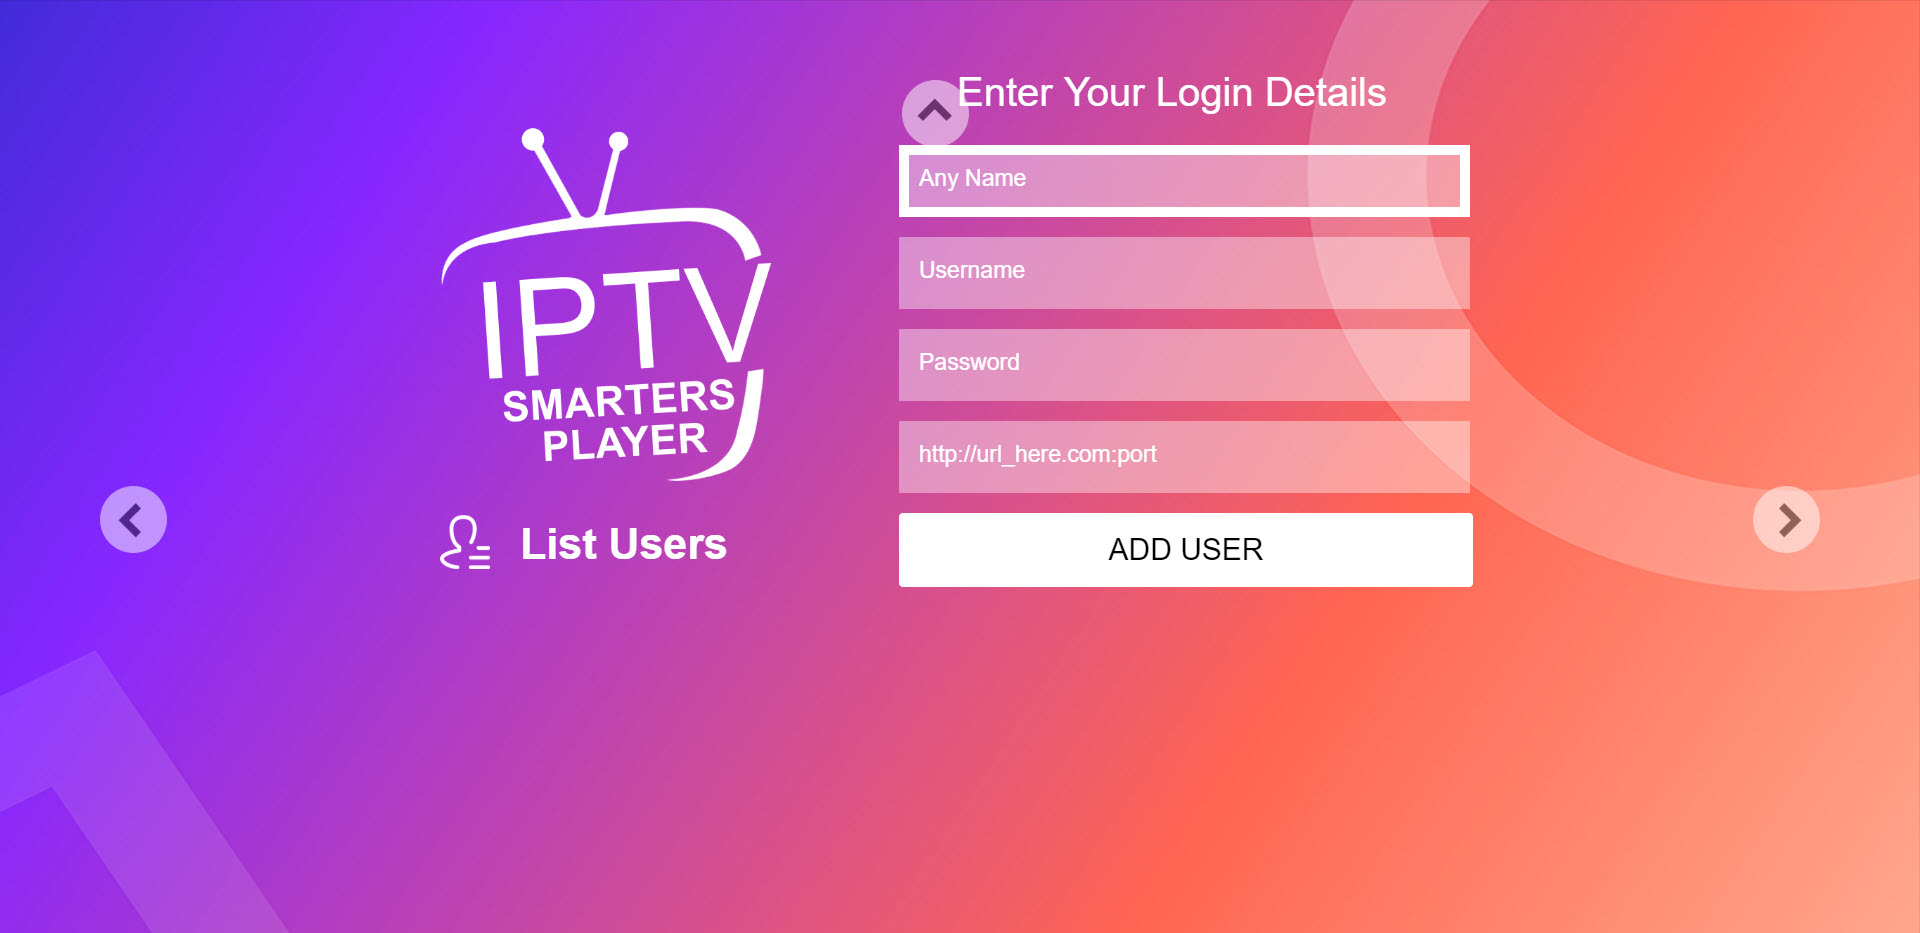 Capture d'écran IPTV Smarters Player